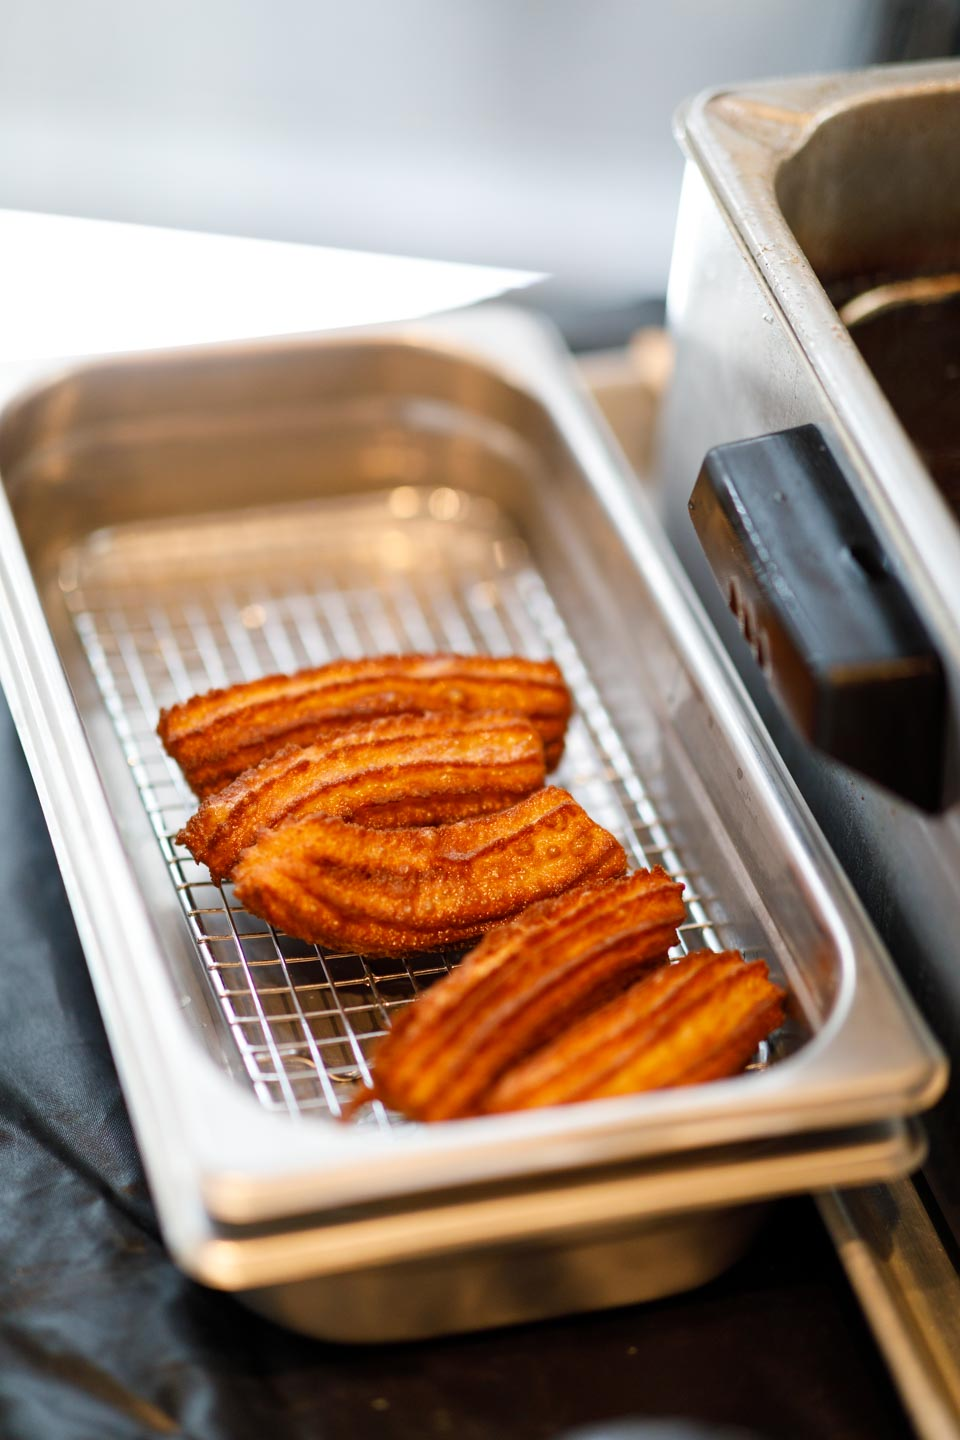 Churros ready for flavorings